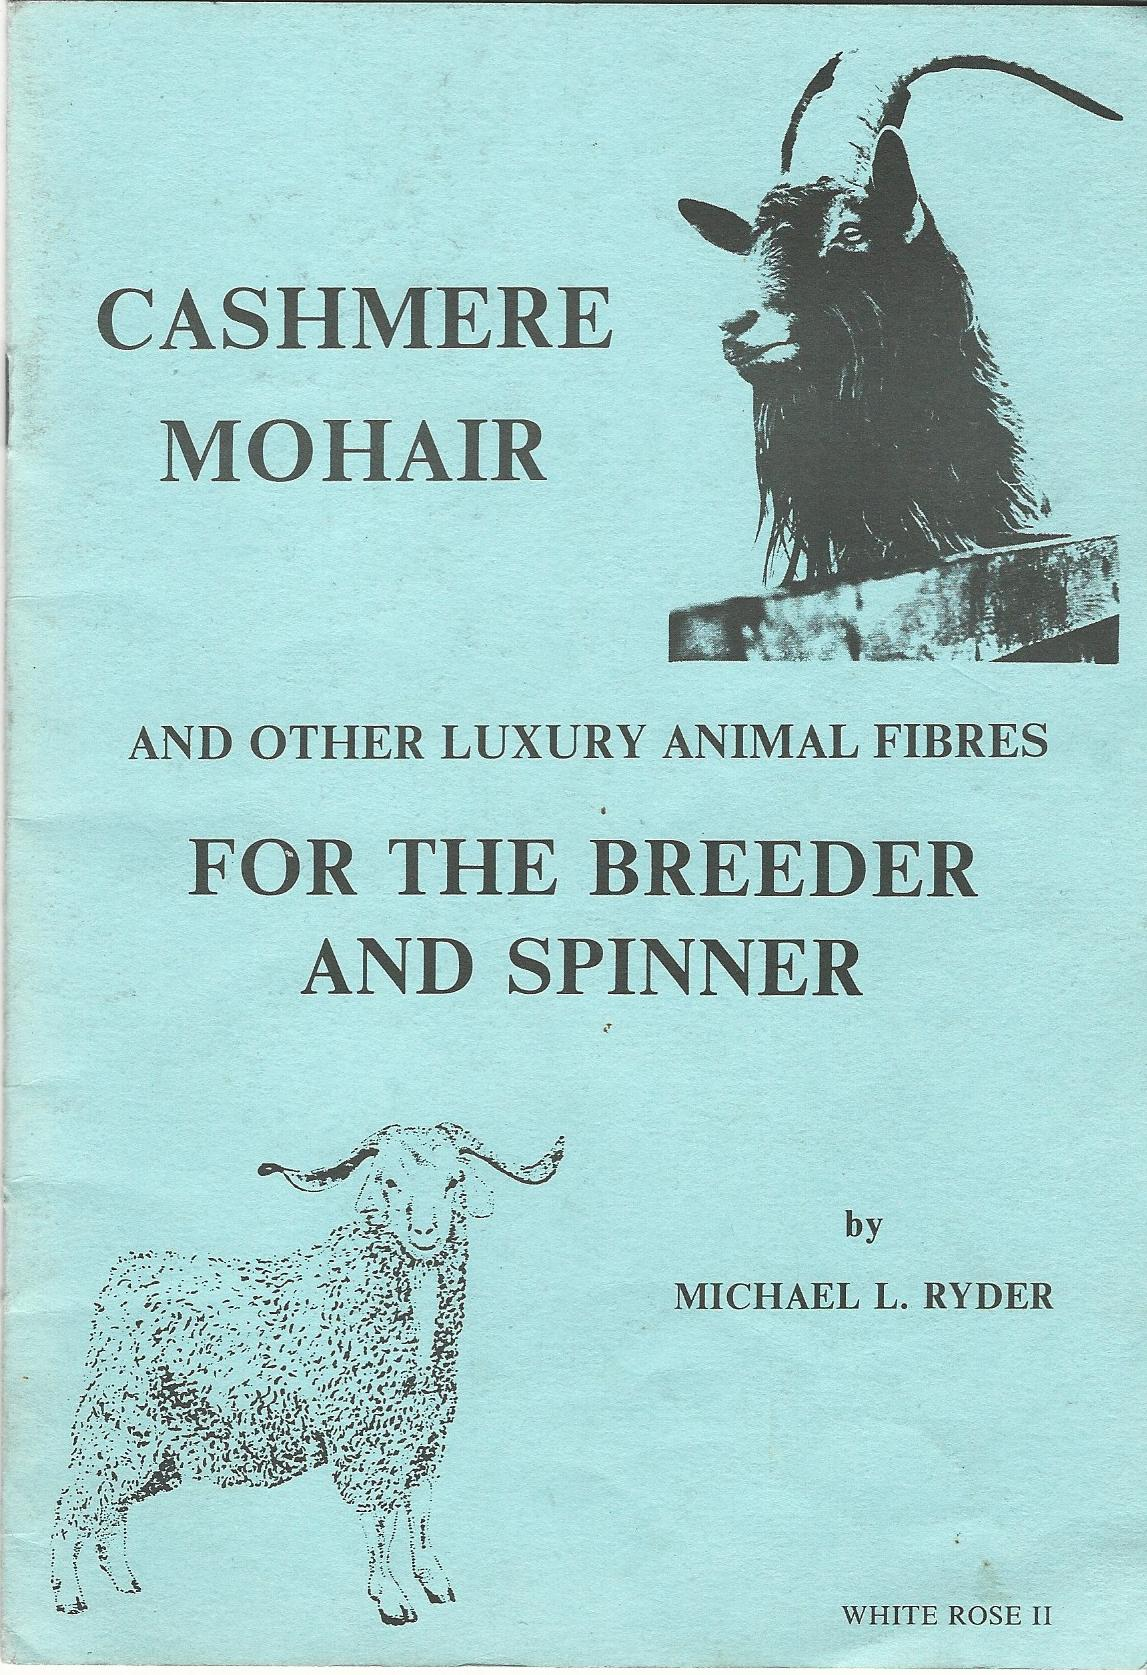 Image for Cashmere, Mohair and other Luxury Animal Fibres for the Breeder and Spinner.